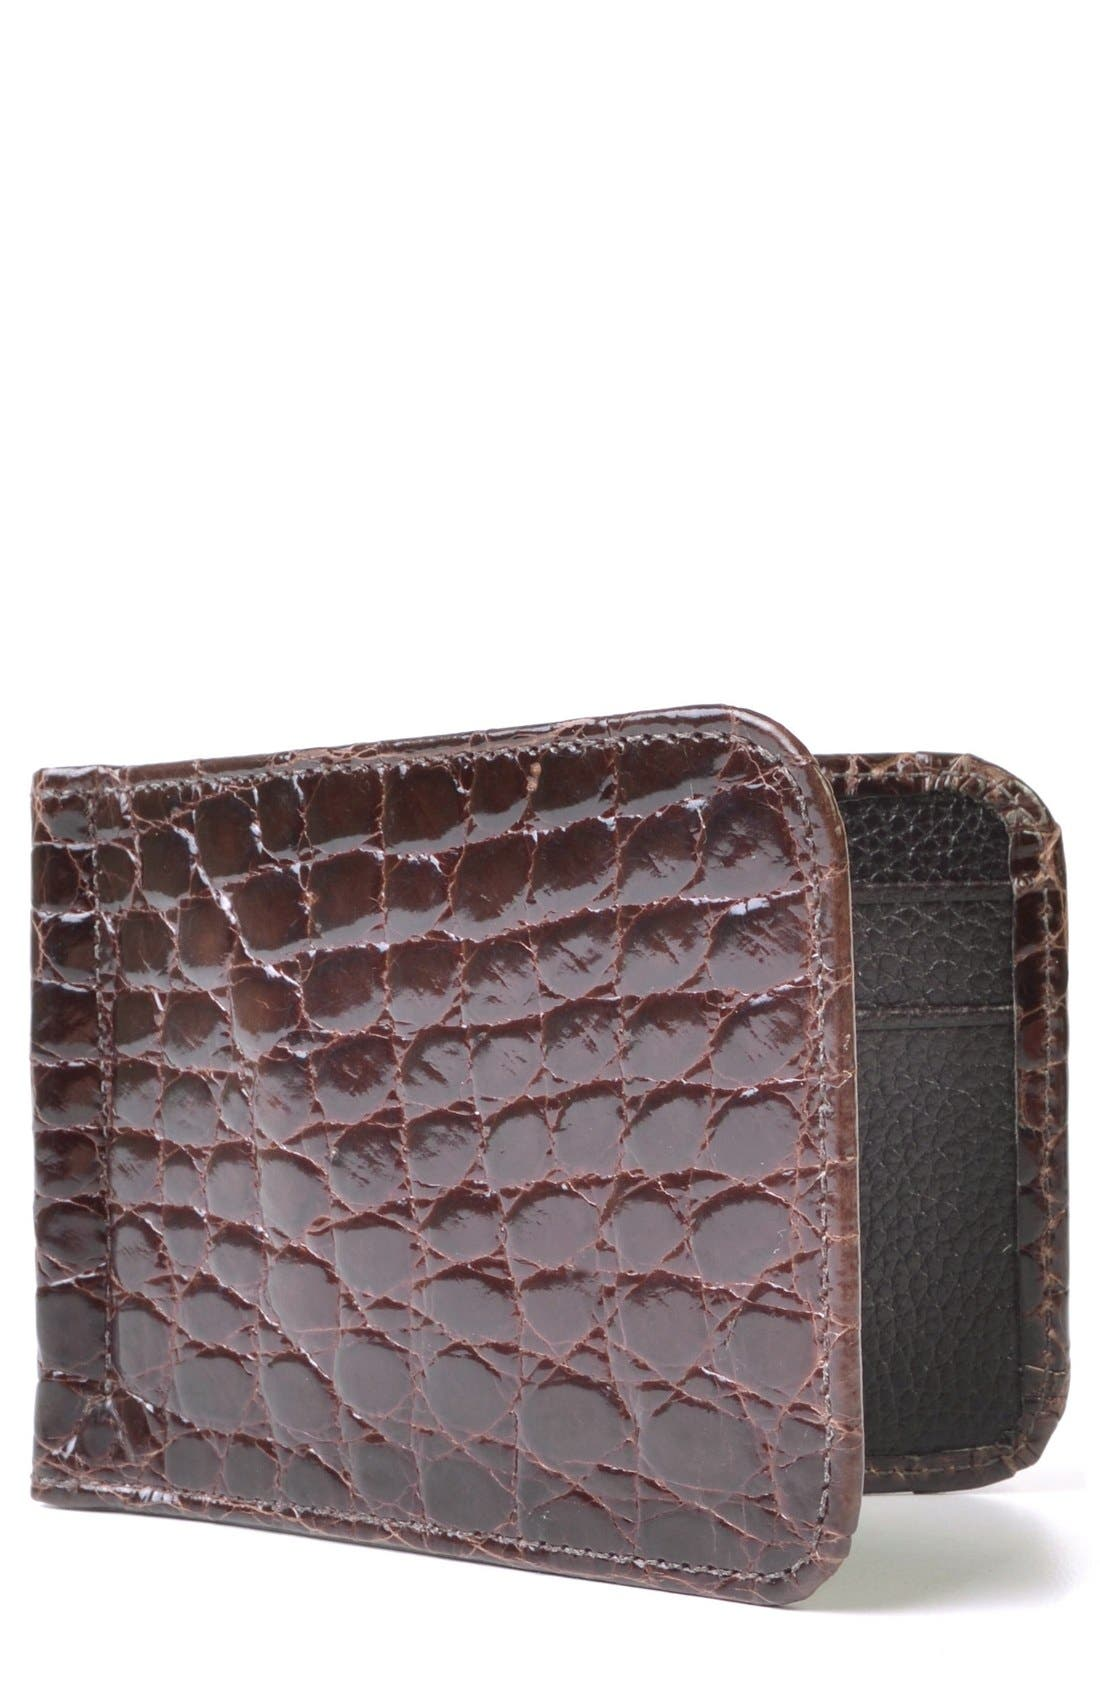 Alternate Image 1 Selected - Martin Dingman 'Joseph' Genuine American Alligator Leather Money Clip Wallet